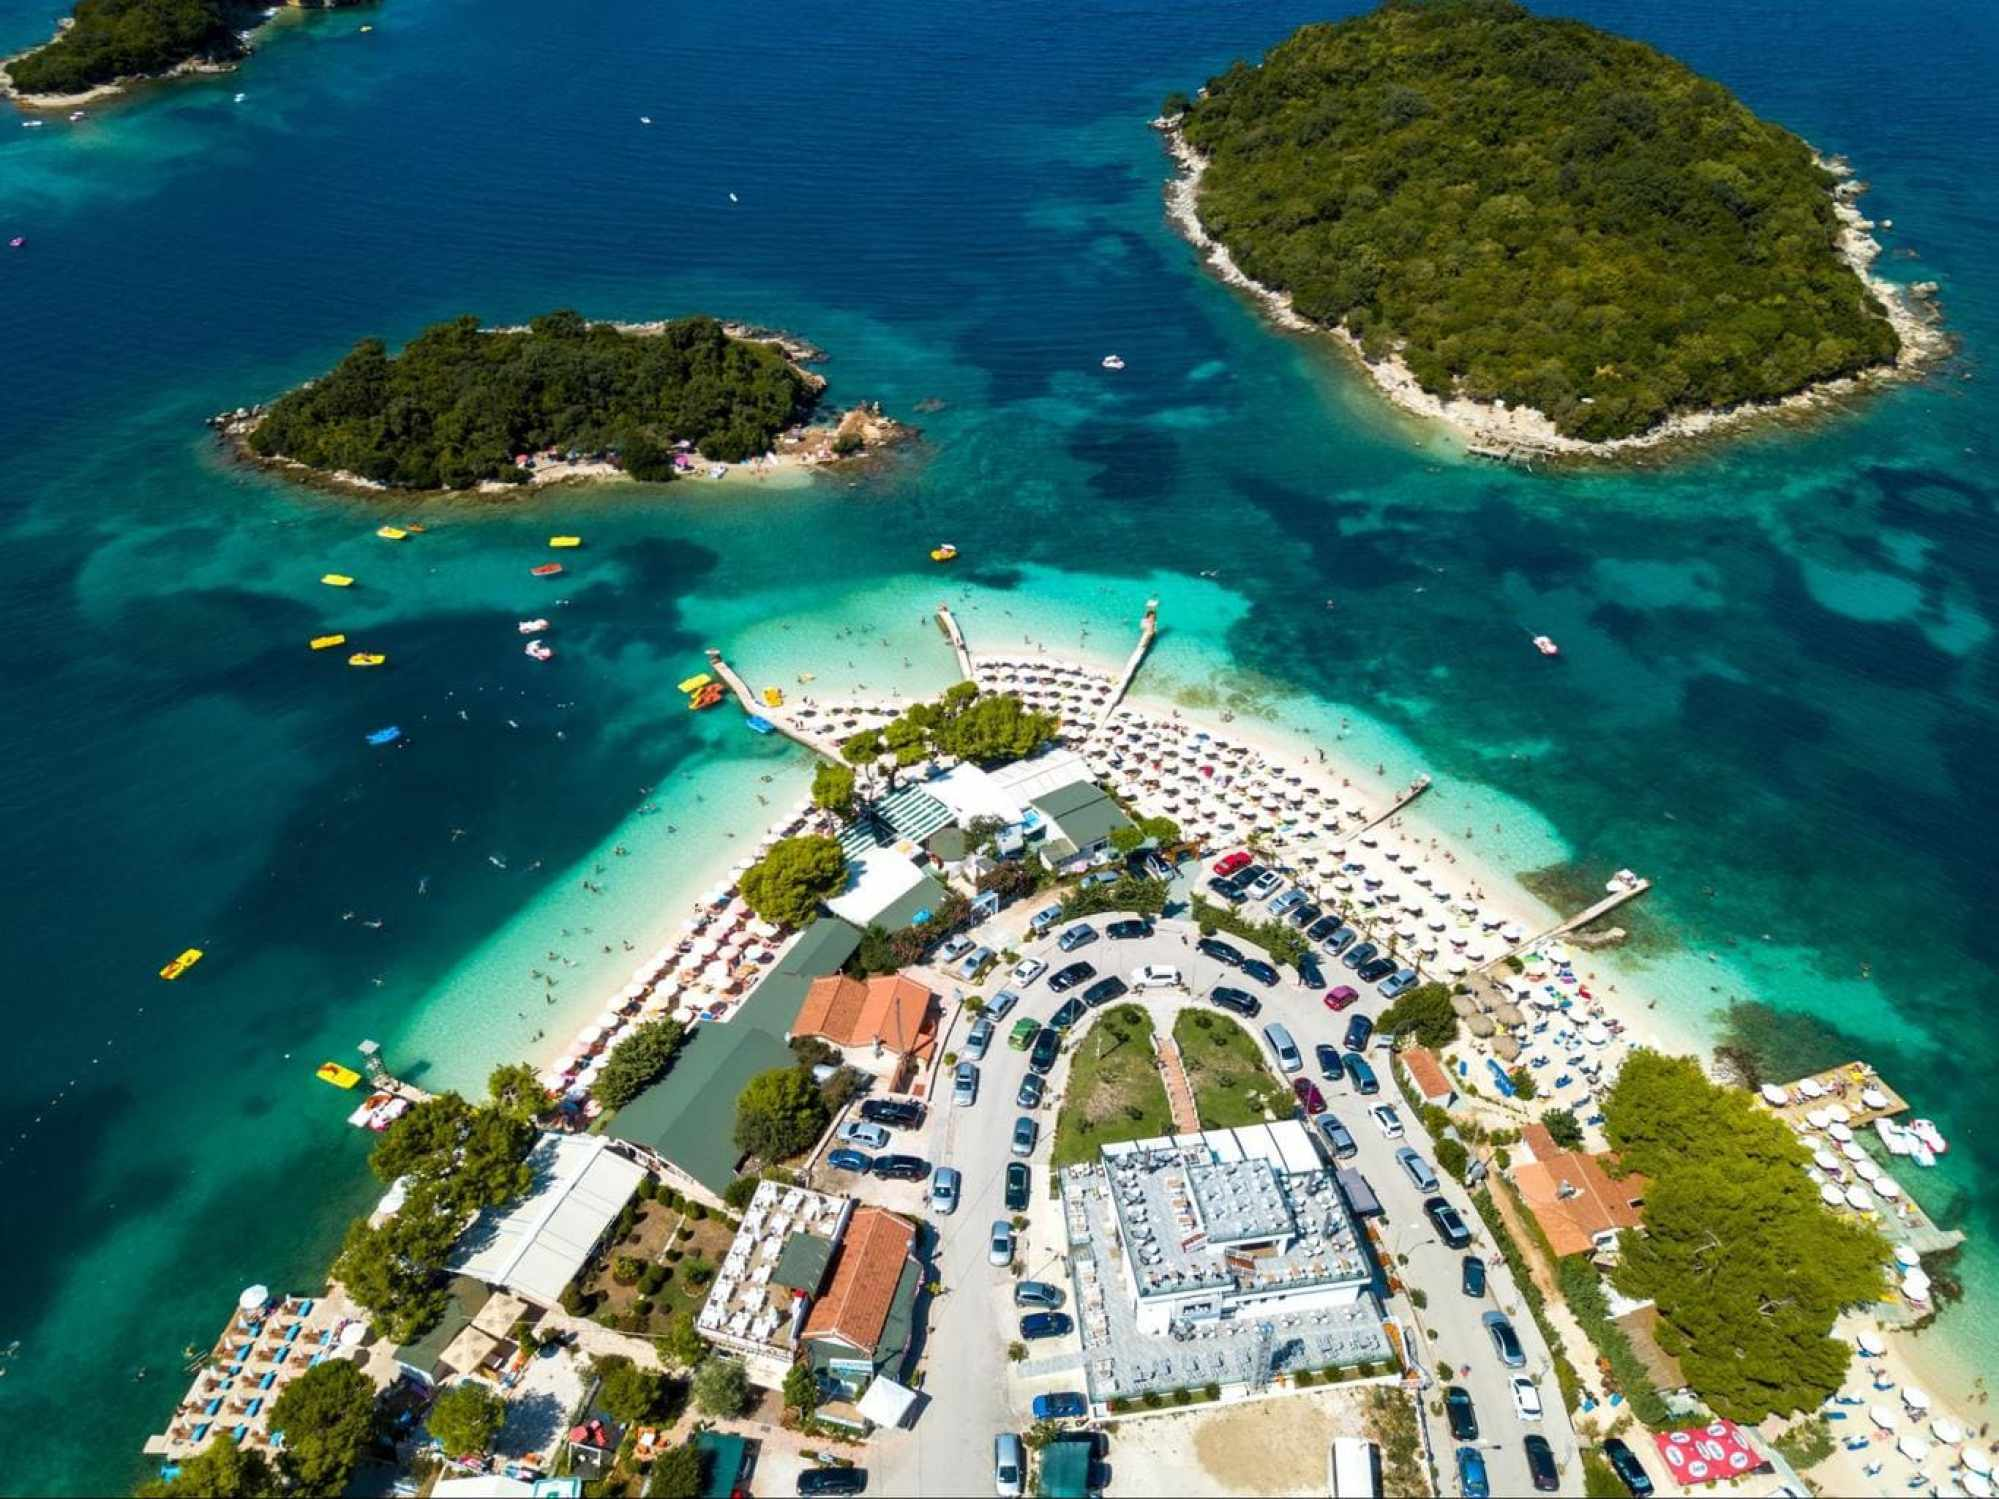 The main beach in Ksamil and the islands around it